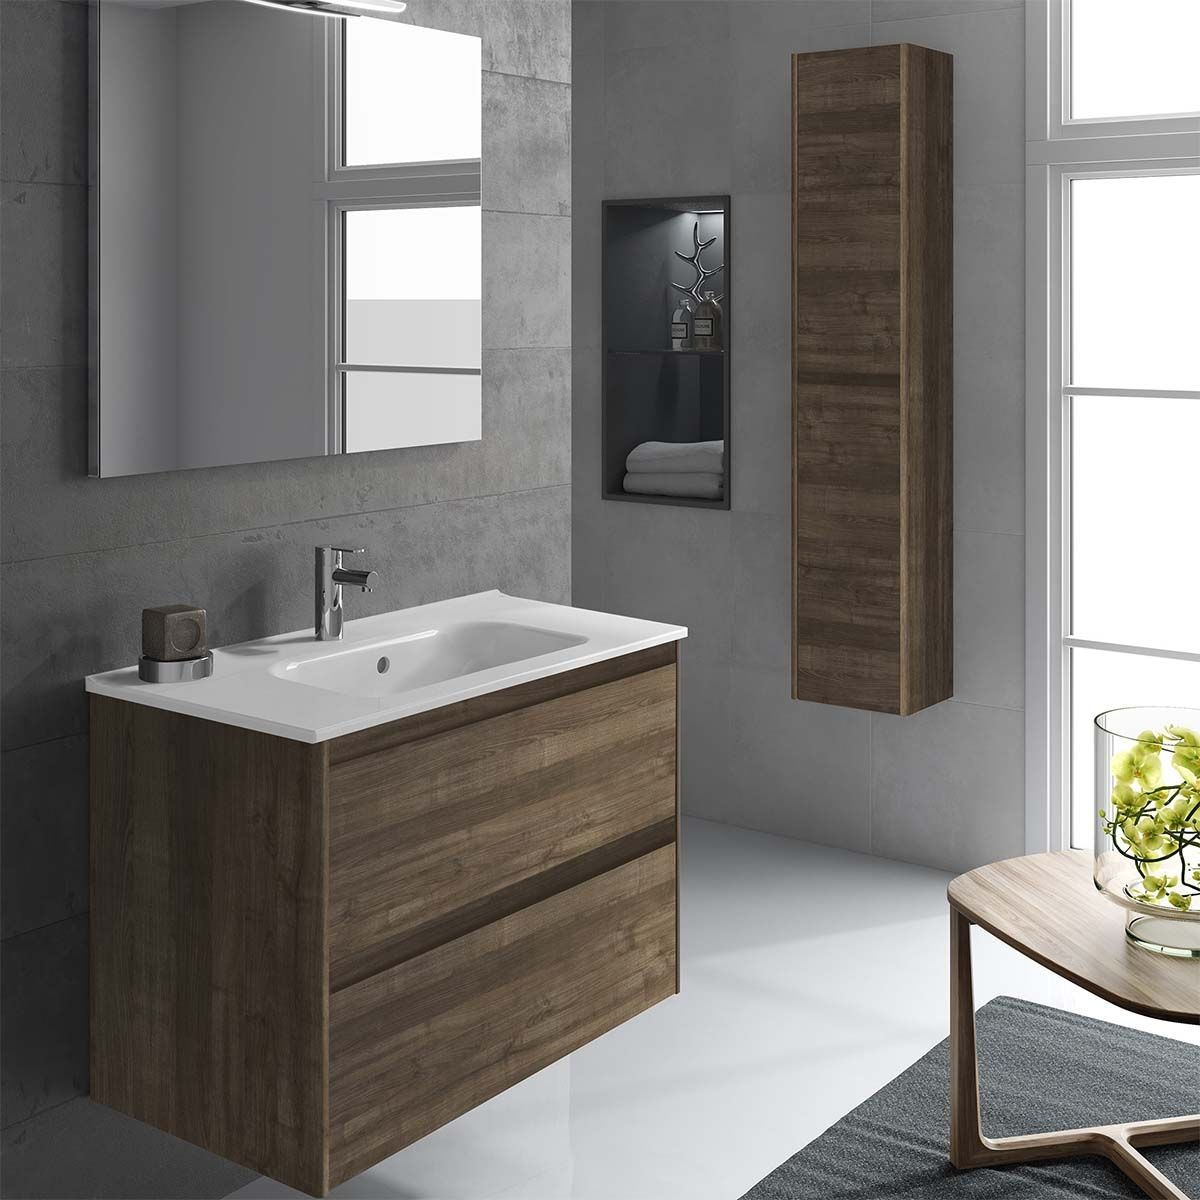 /wp/wp-content/uploads/2020/03/ws-bath-collections-ambra-60-wall-mounted-bathroom-vanity.jpg